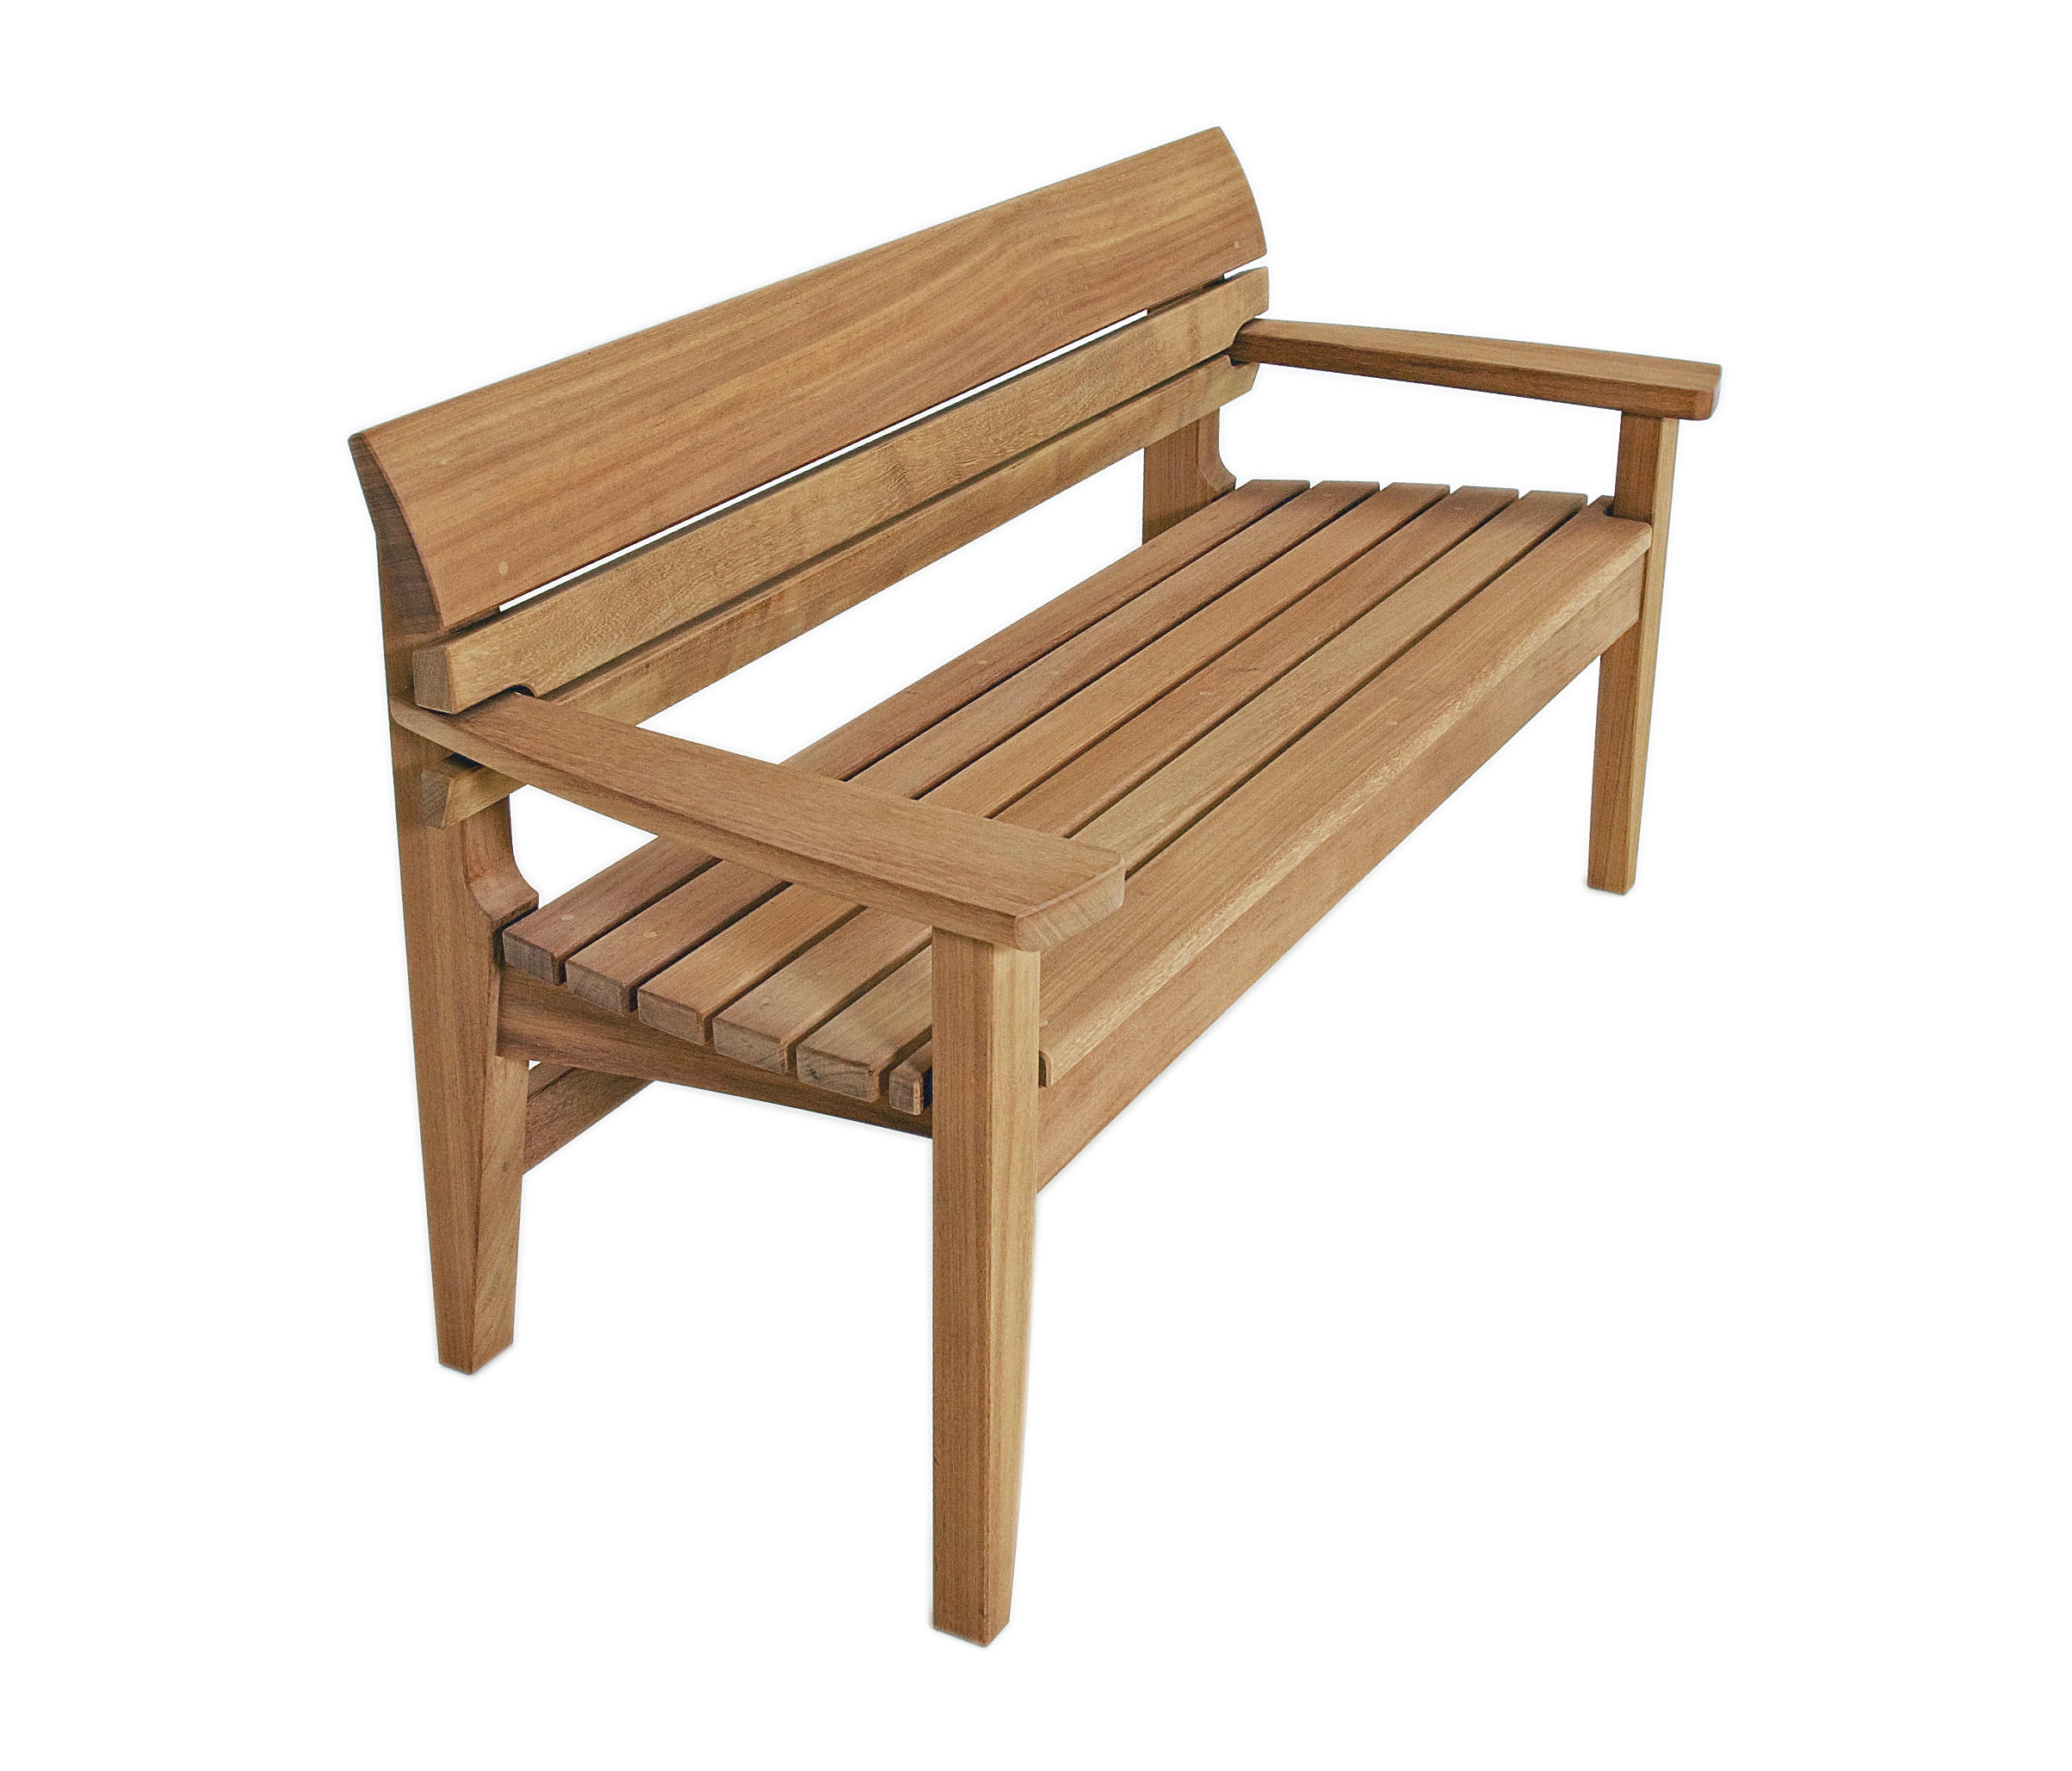 CHICO FULL BENCH - Garden benches from Benchmark Furniture | Architonic